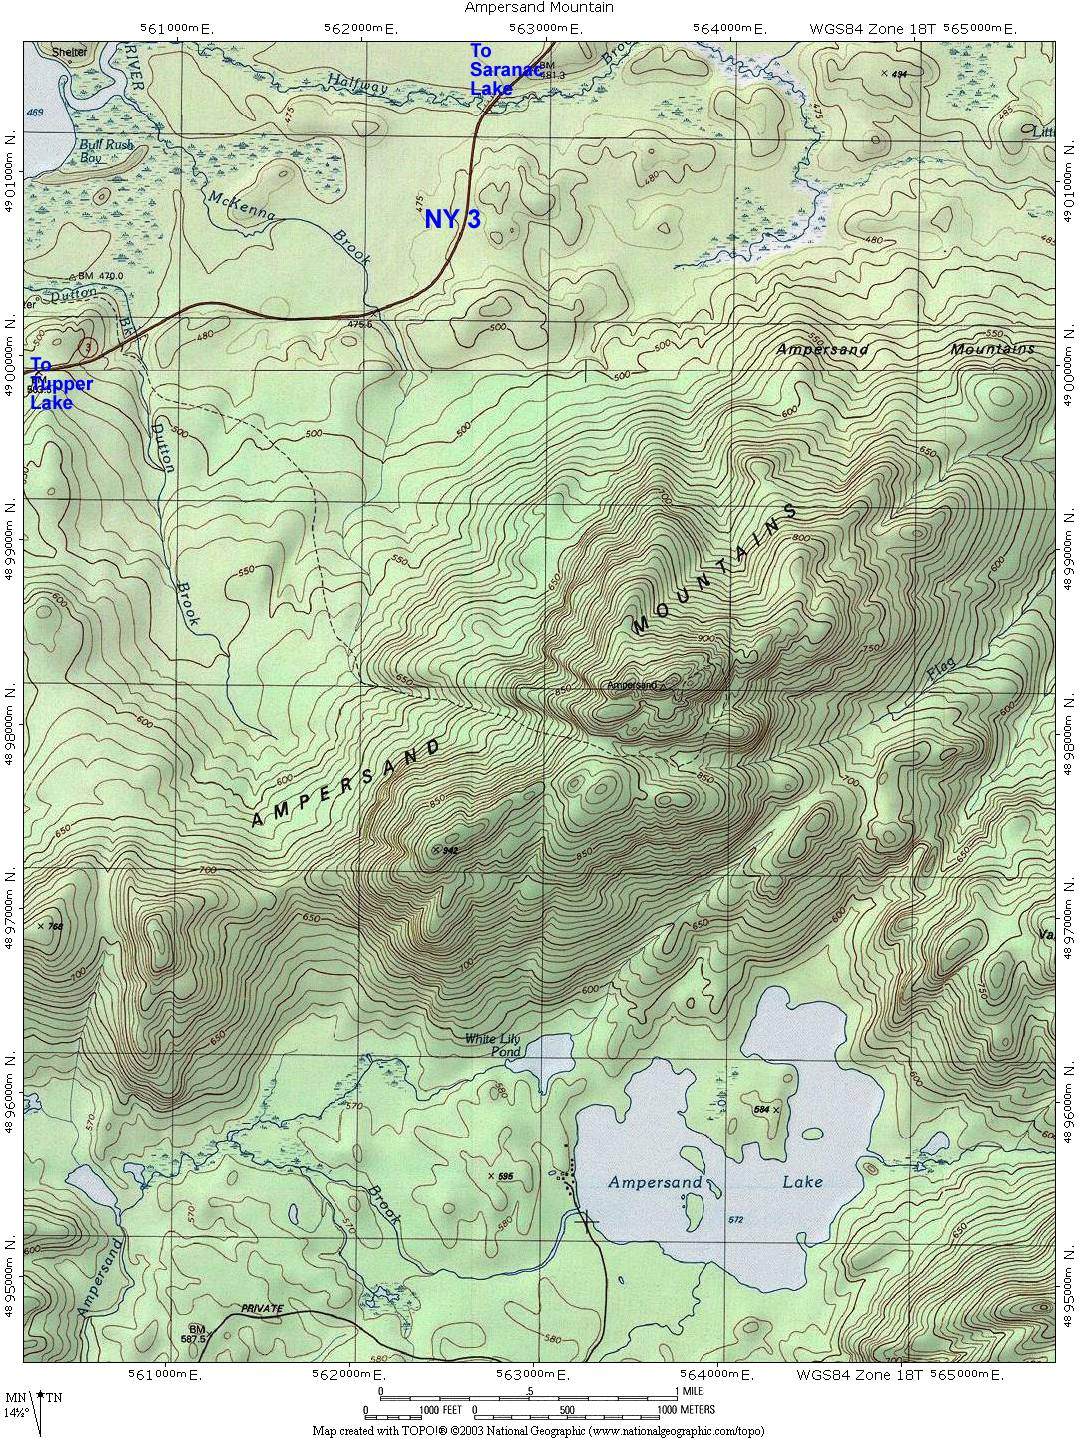 Ampersand Mountain Topographic Map